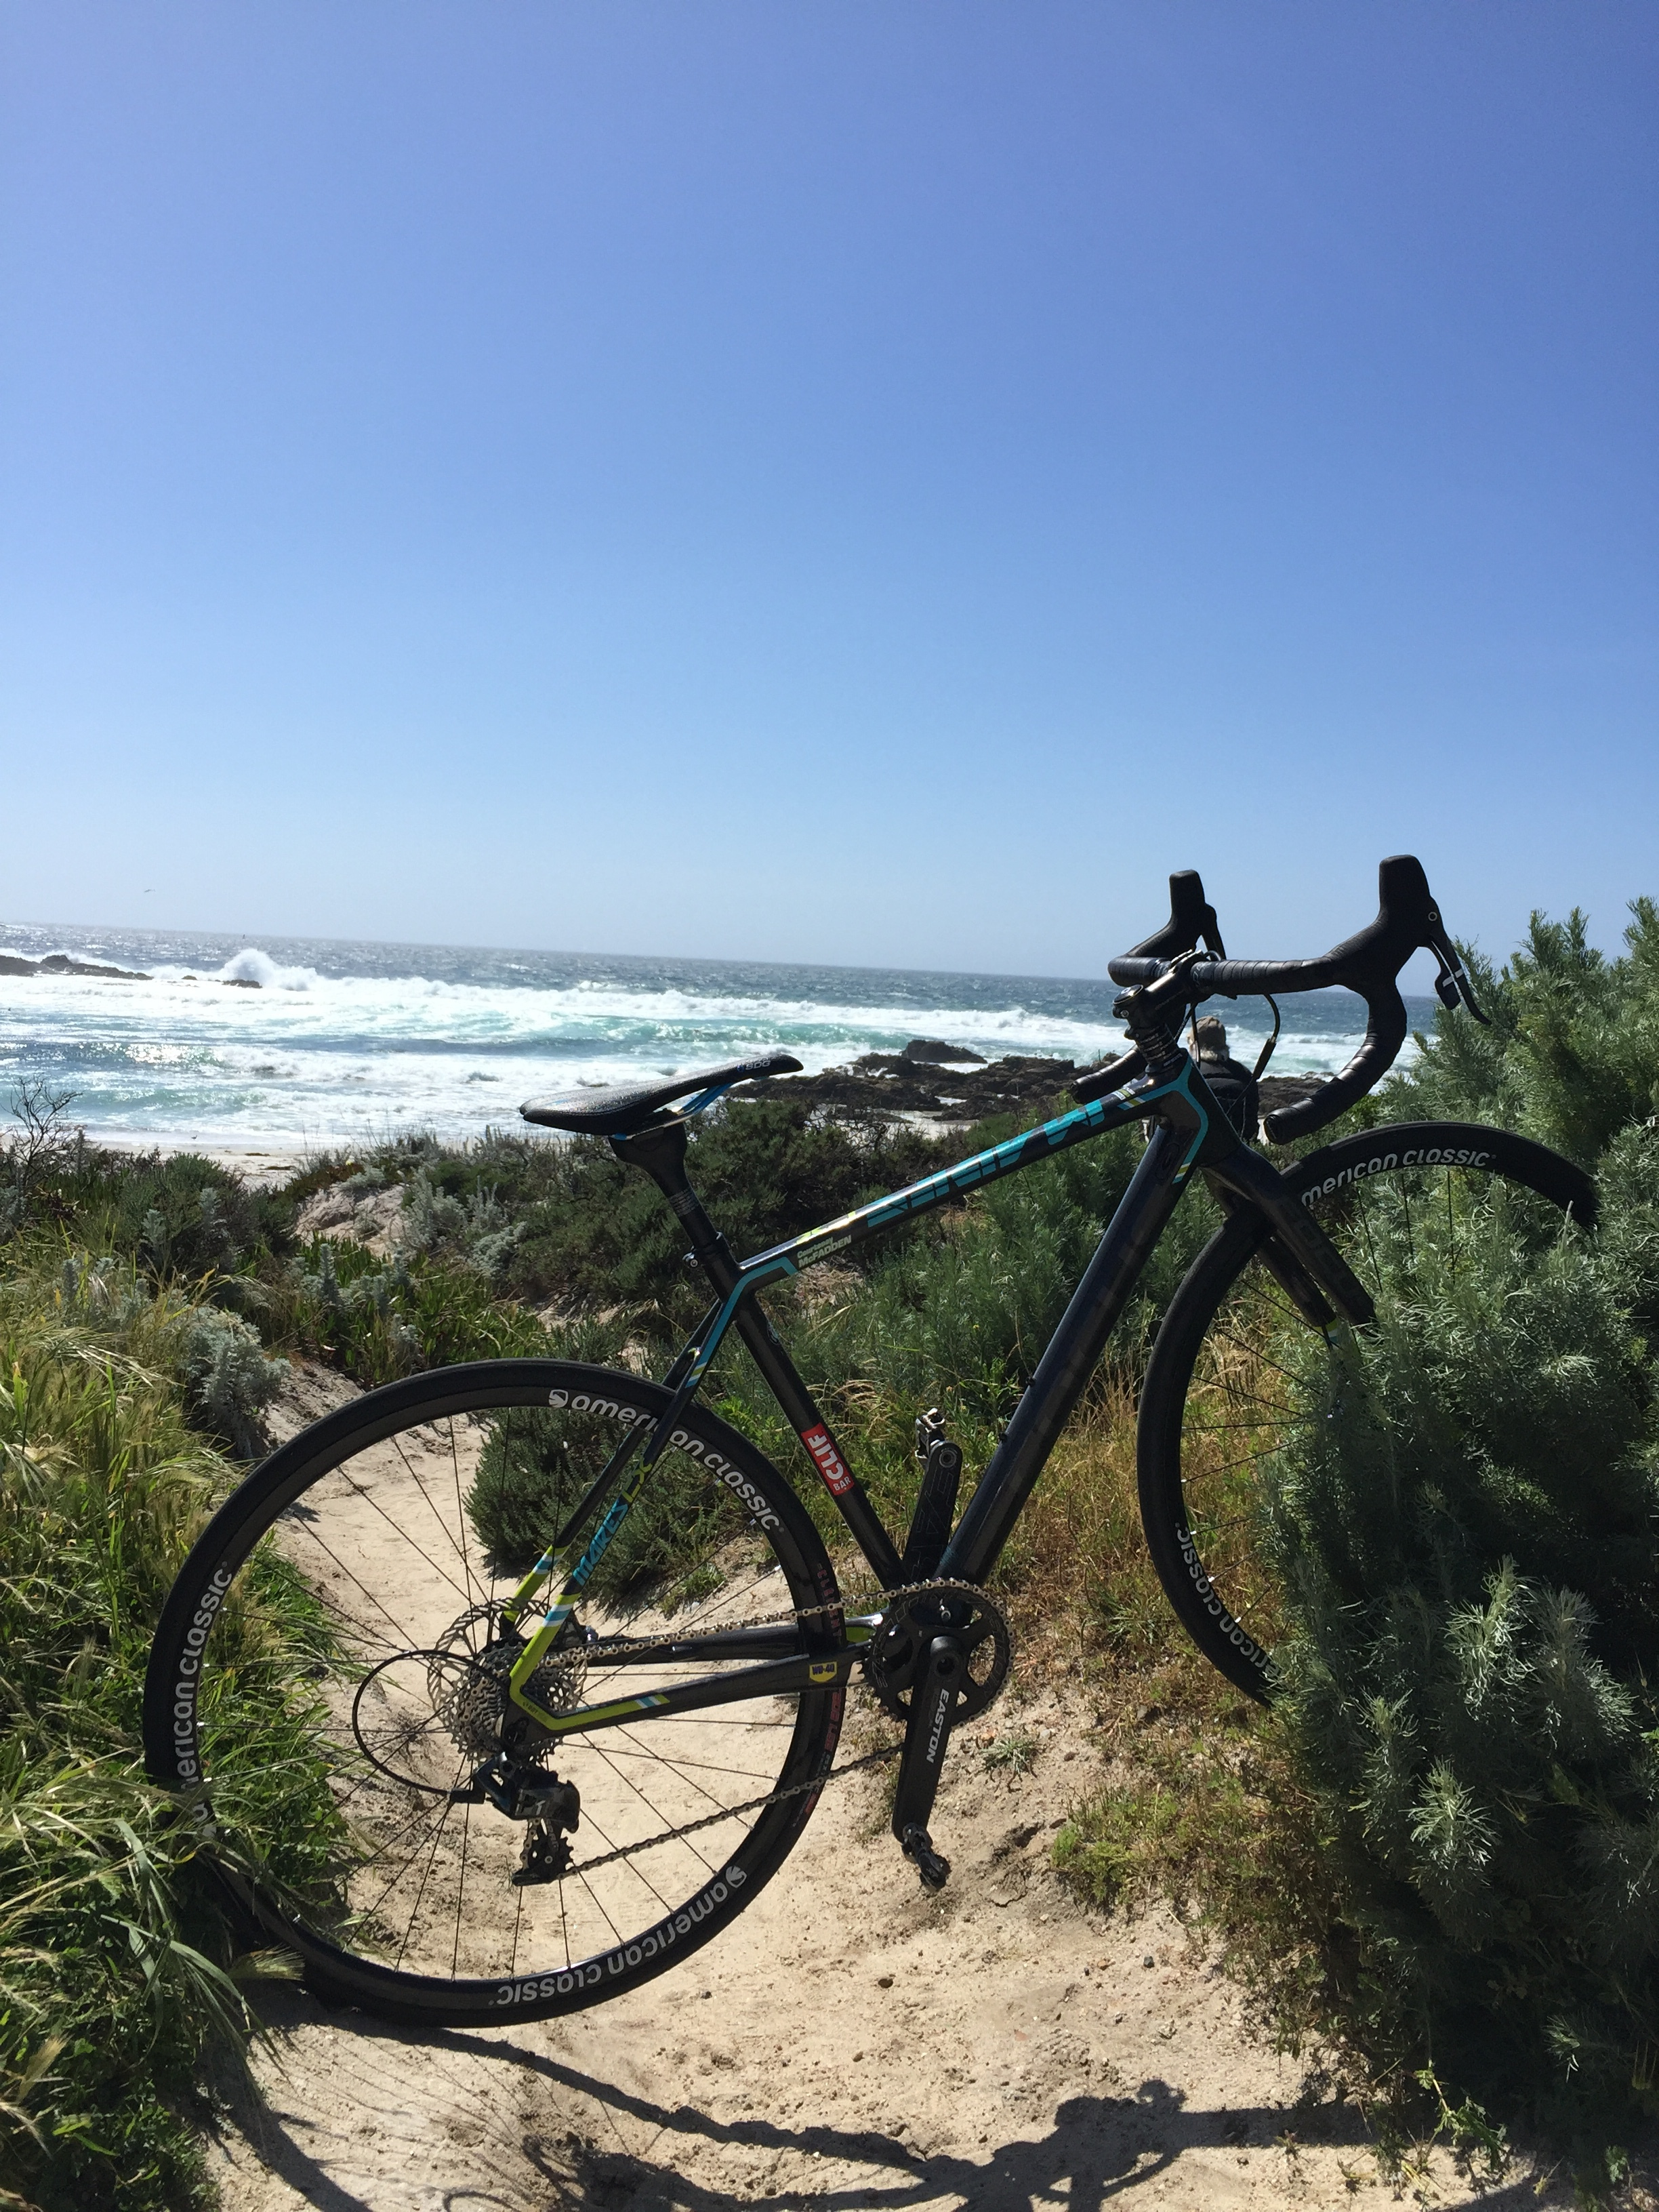 I spent 4 days in Monterey at Sea Otter connecting with sponsors and friends.  It was a great test for the hip to see what it could handle.  The hip did better than I anticipated, but the trip was 1 day too long for the hip.